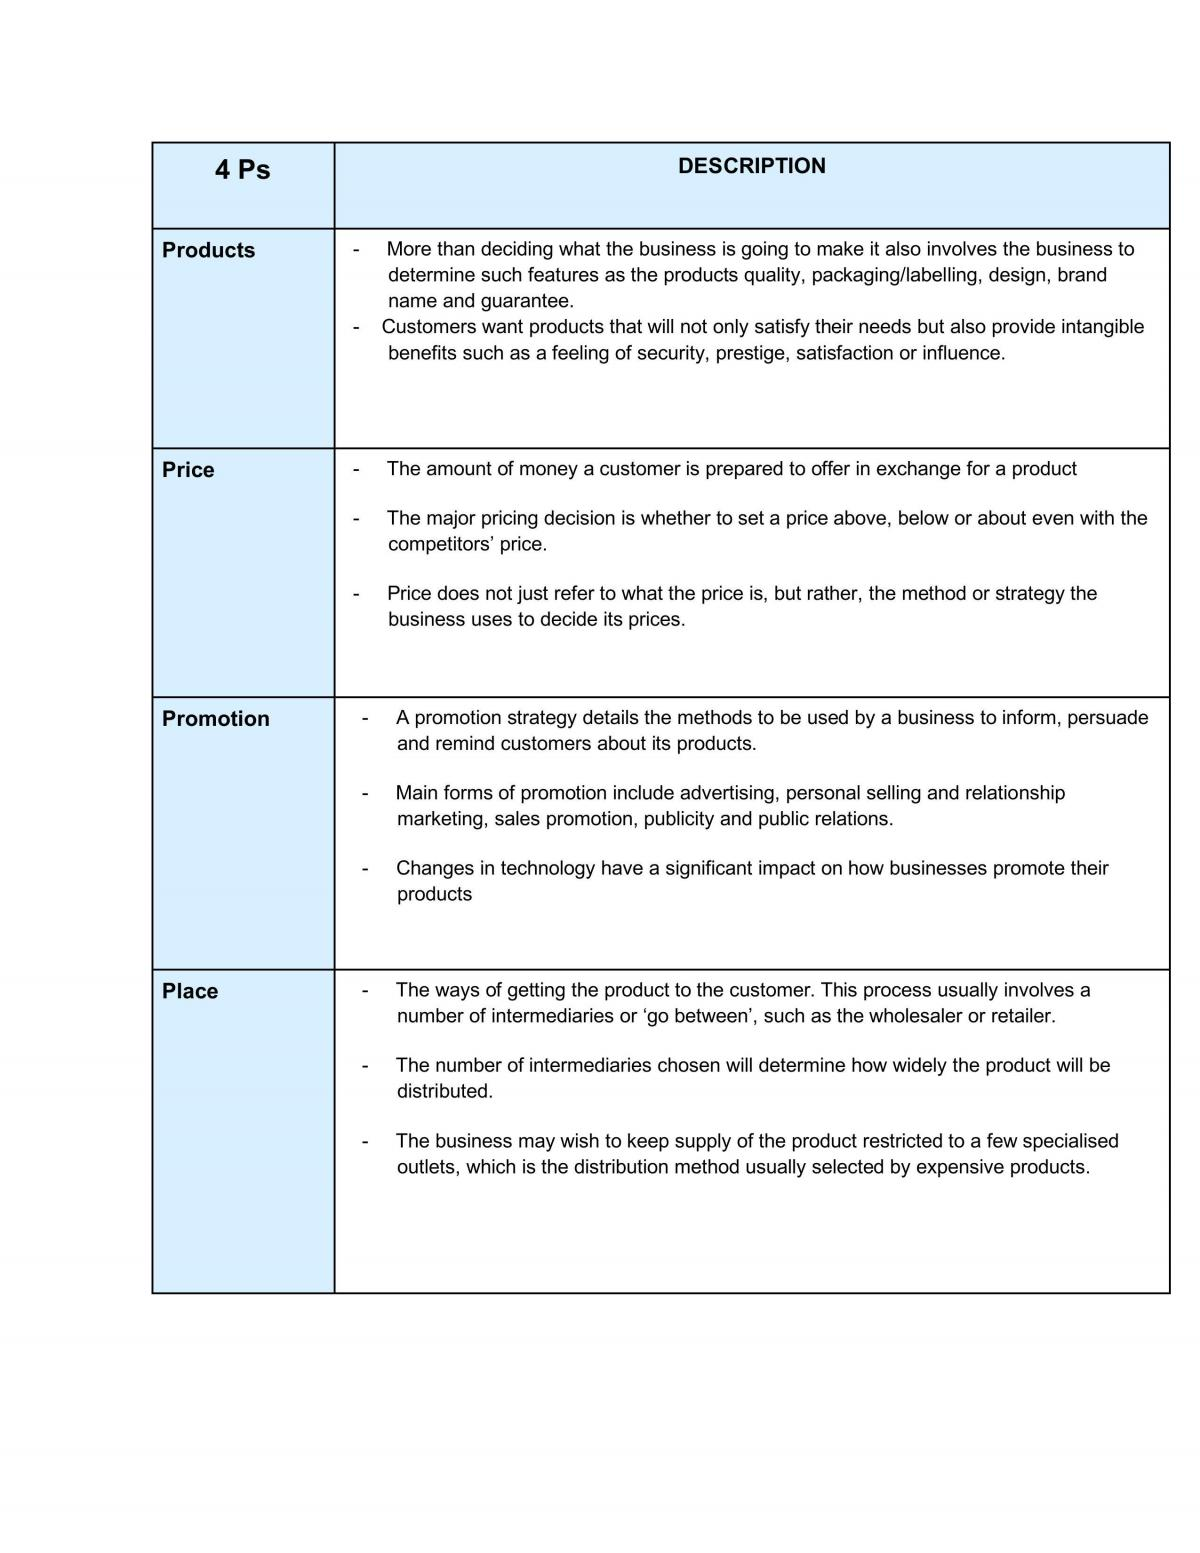 Complete Business Notes on Marketing  - Page 11